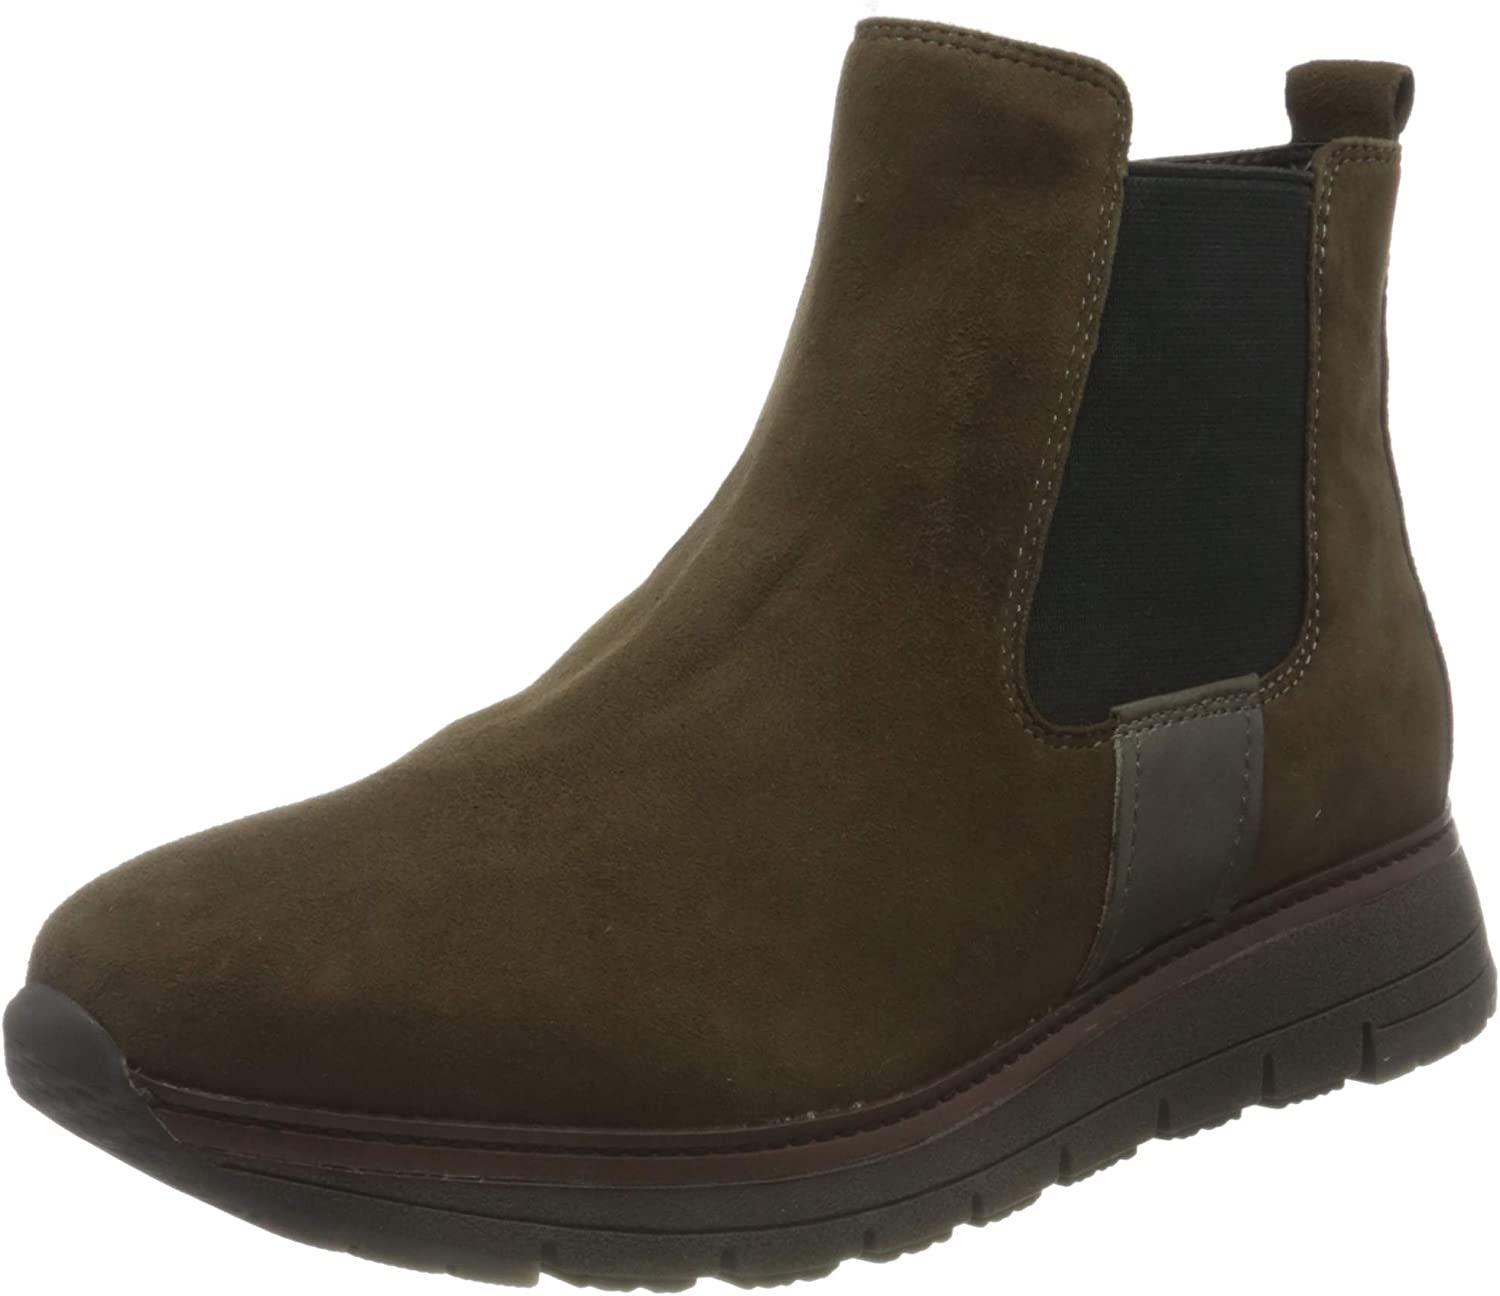 Tamaris Women's 1-1-25460-25 Year-end annual account Boot Ankle Ranking TOP13